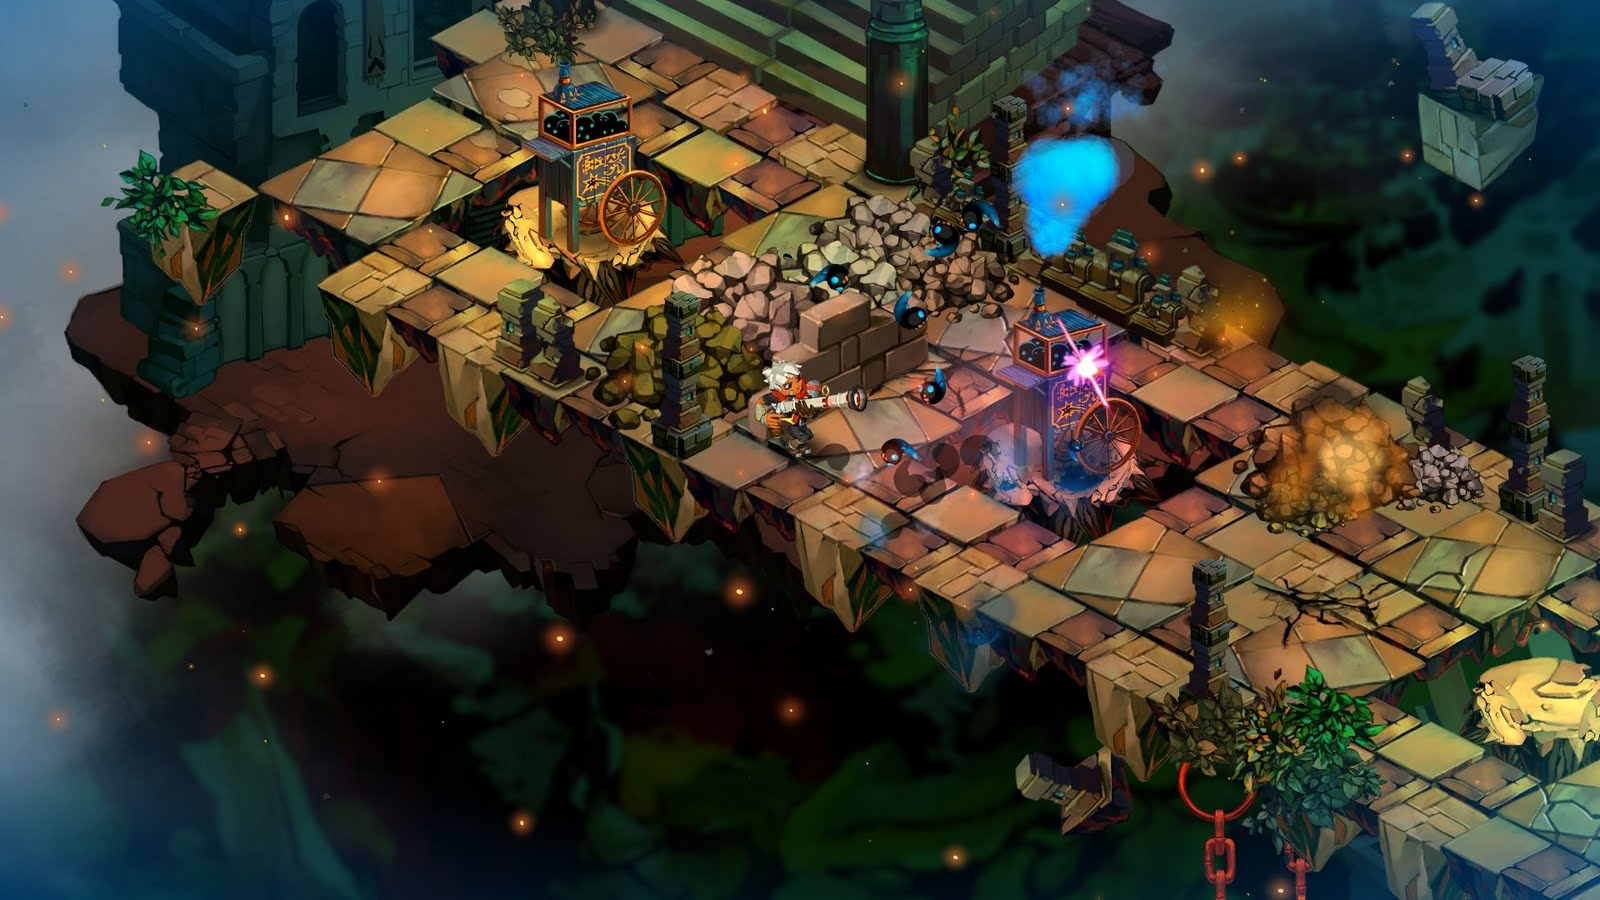 Genre: RPG (Rogue/Action) / Isometric